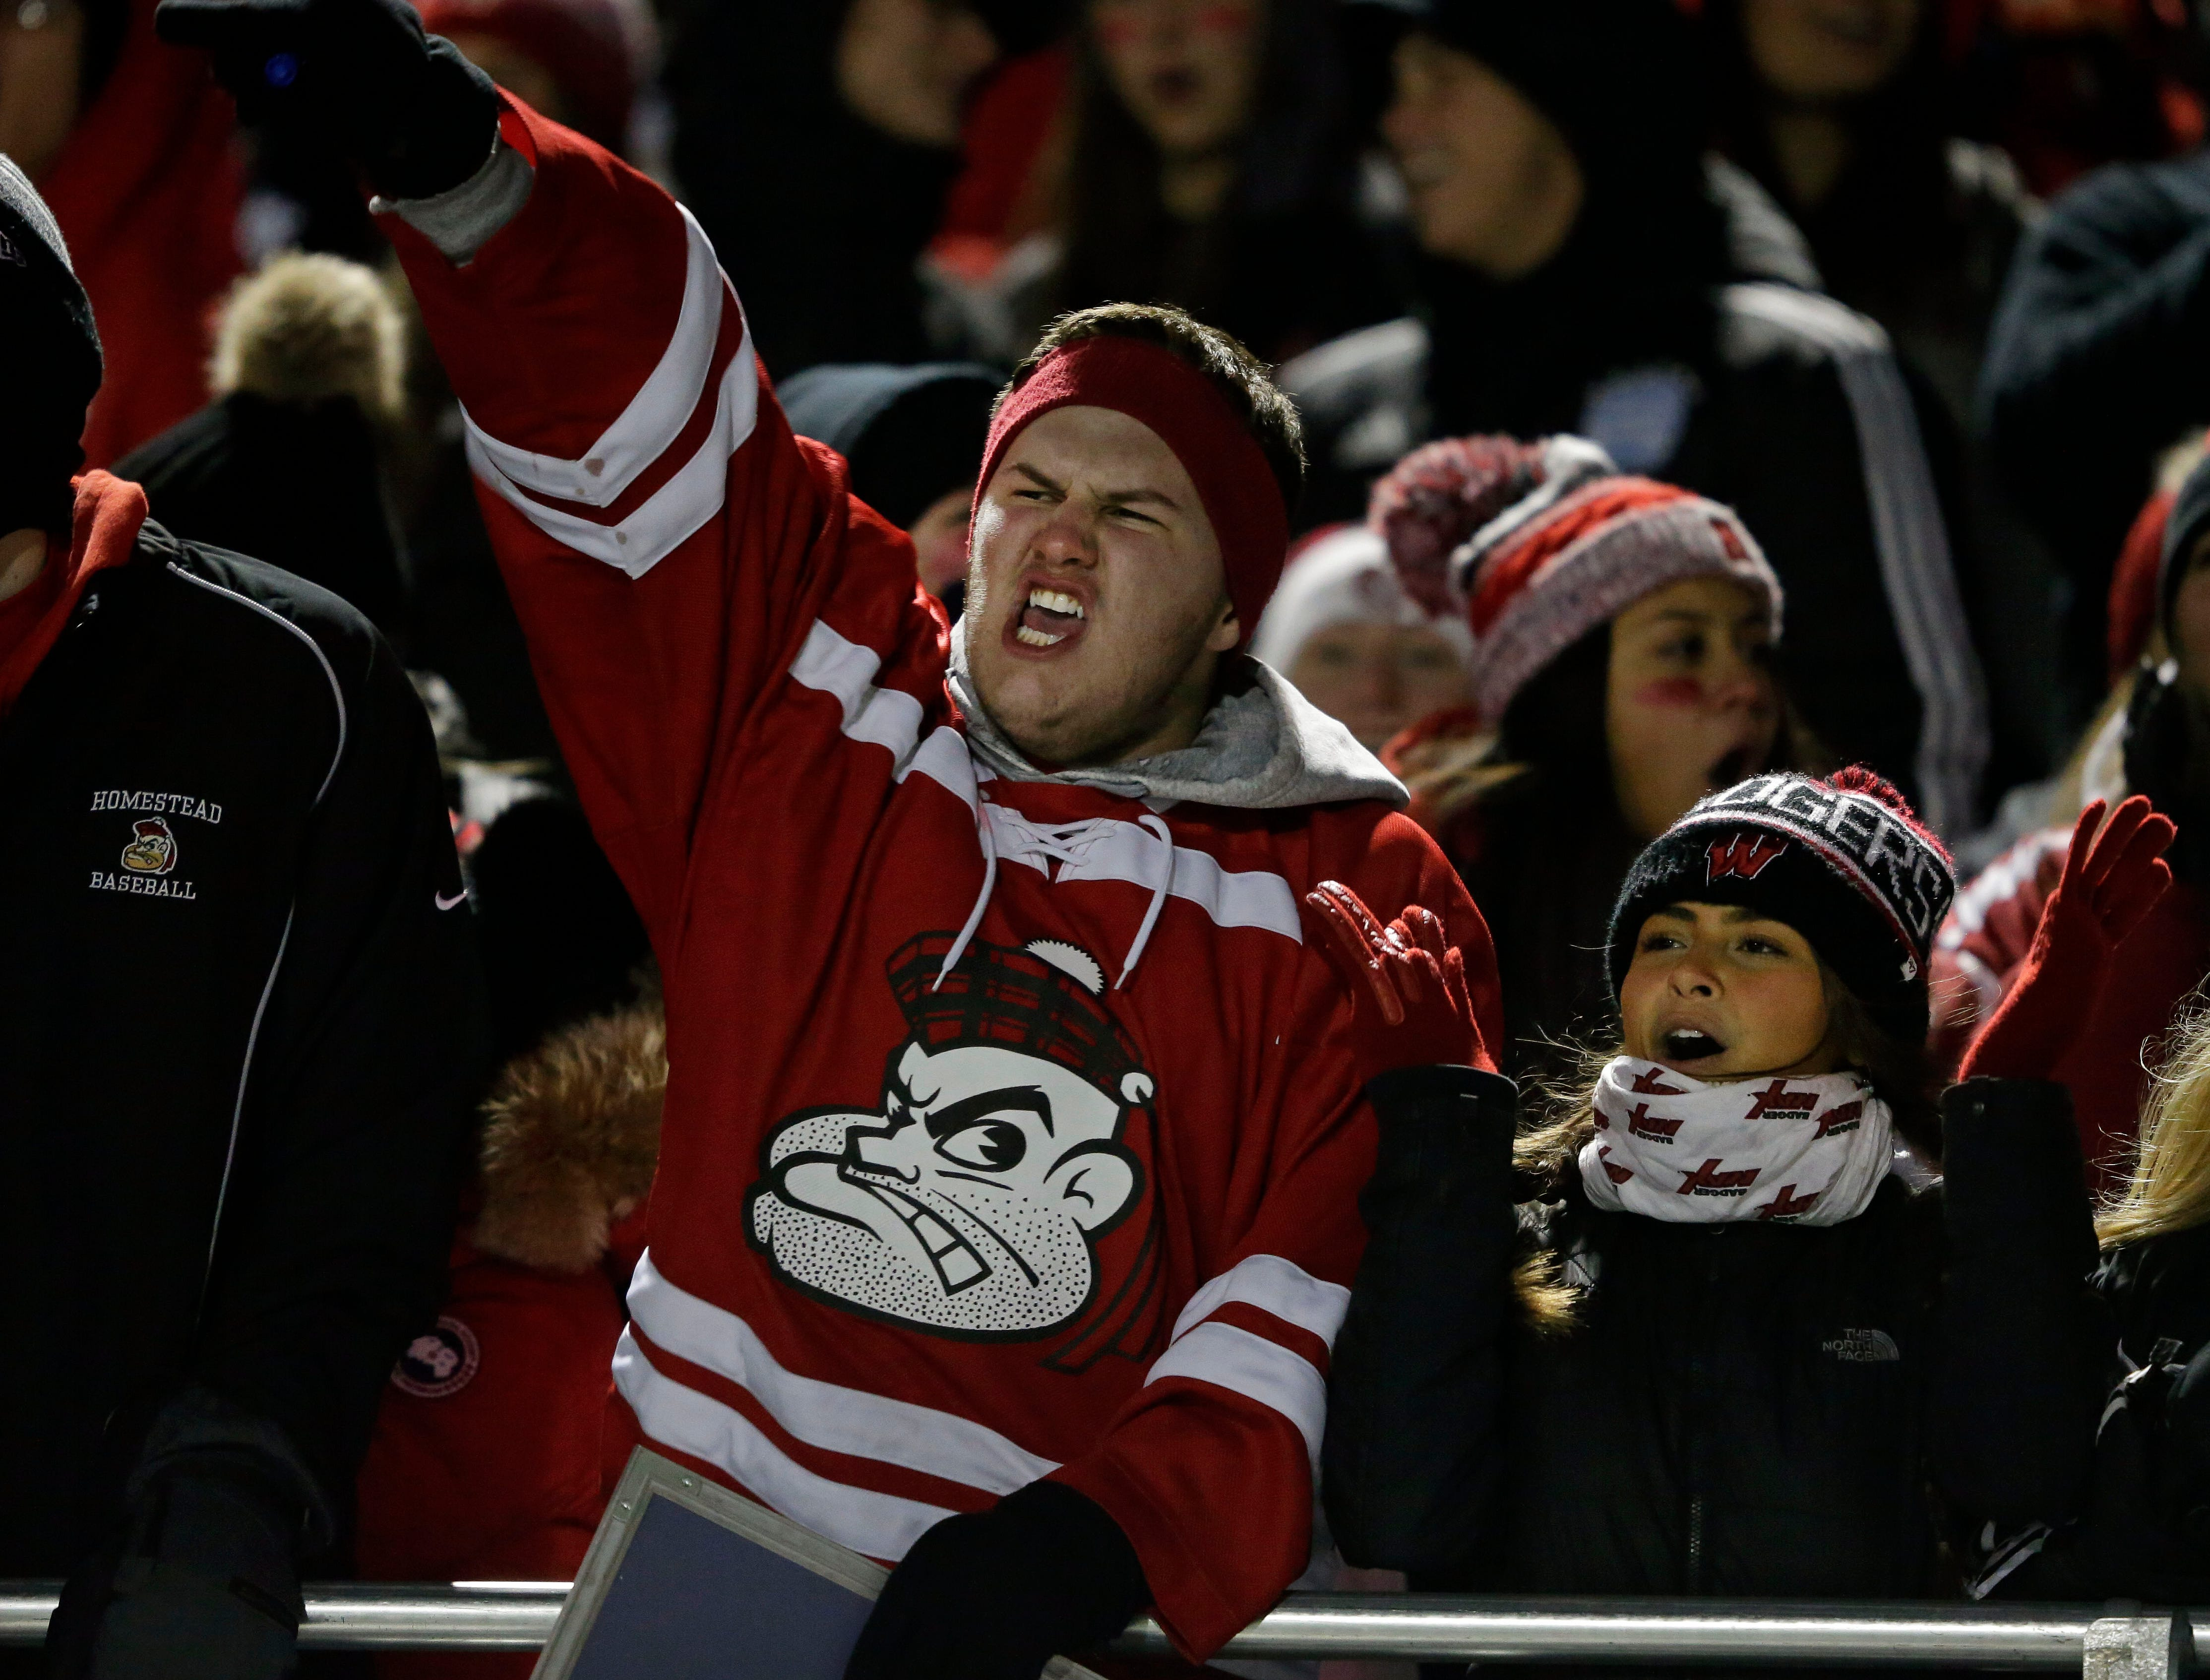 Homestead fans cheer as their team takes on Marshfield in a WIAA Division 2 state semifinal football game Friday, November 9, 2018, at Calder Stadium in Menasha, Wis.Ron Page/USA TODAY NETWORK-Wisconsin